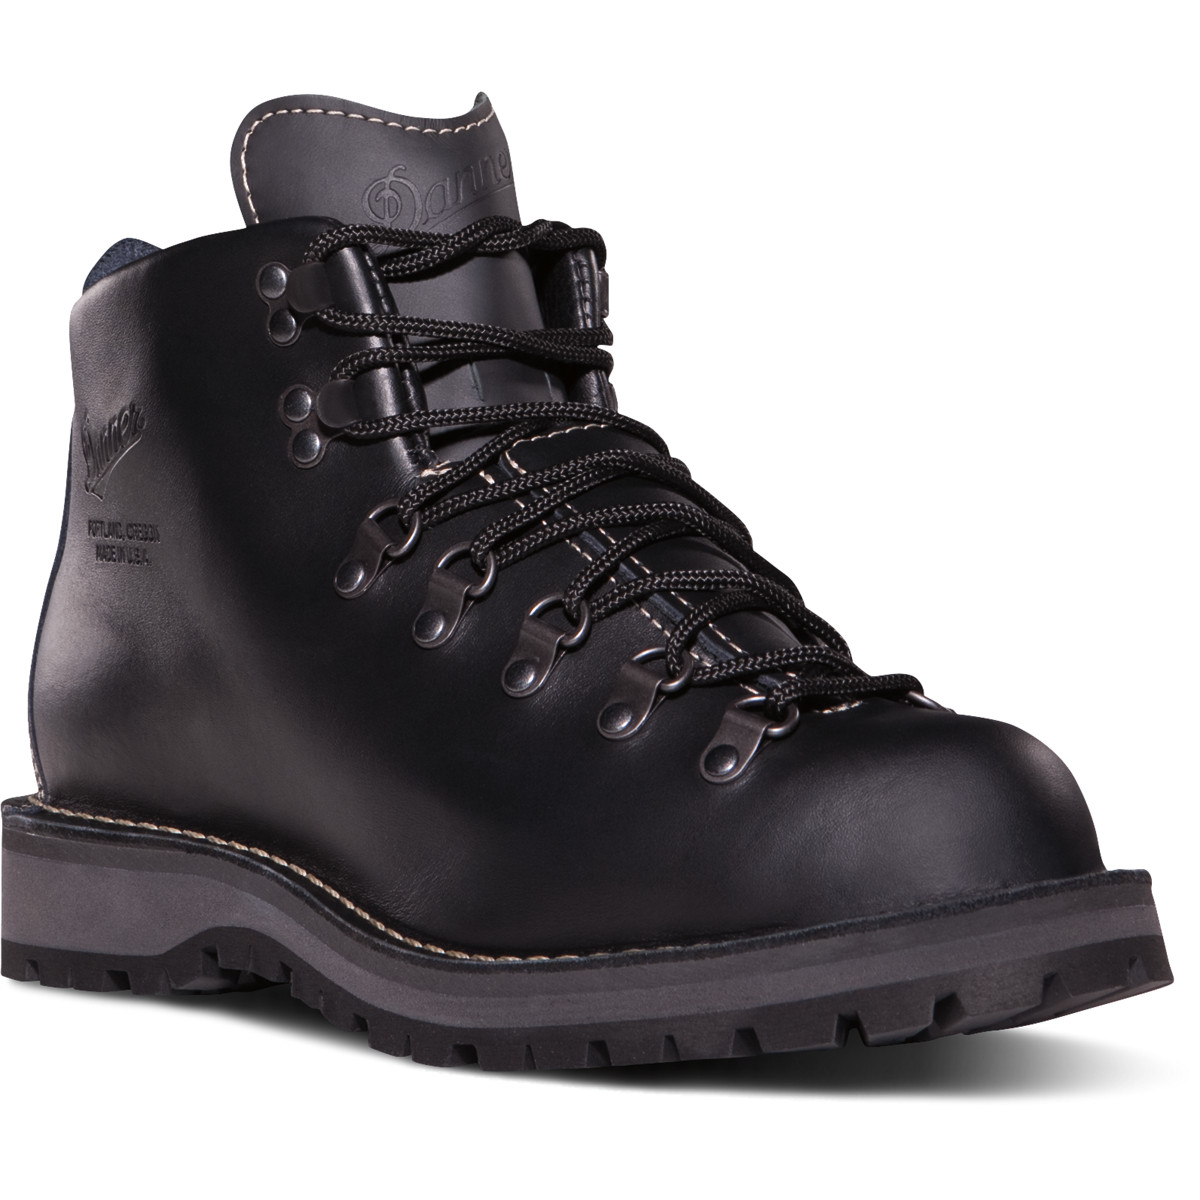 Danner Metatarsal Boots Coltford Boots